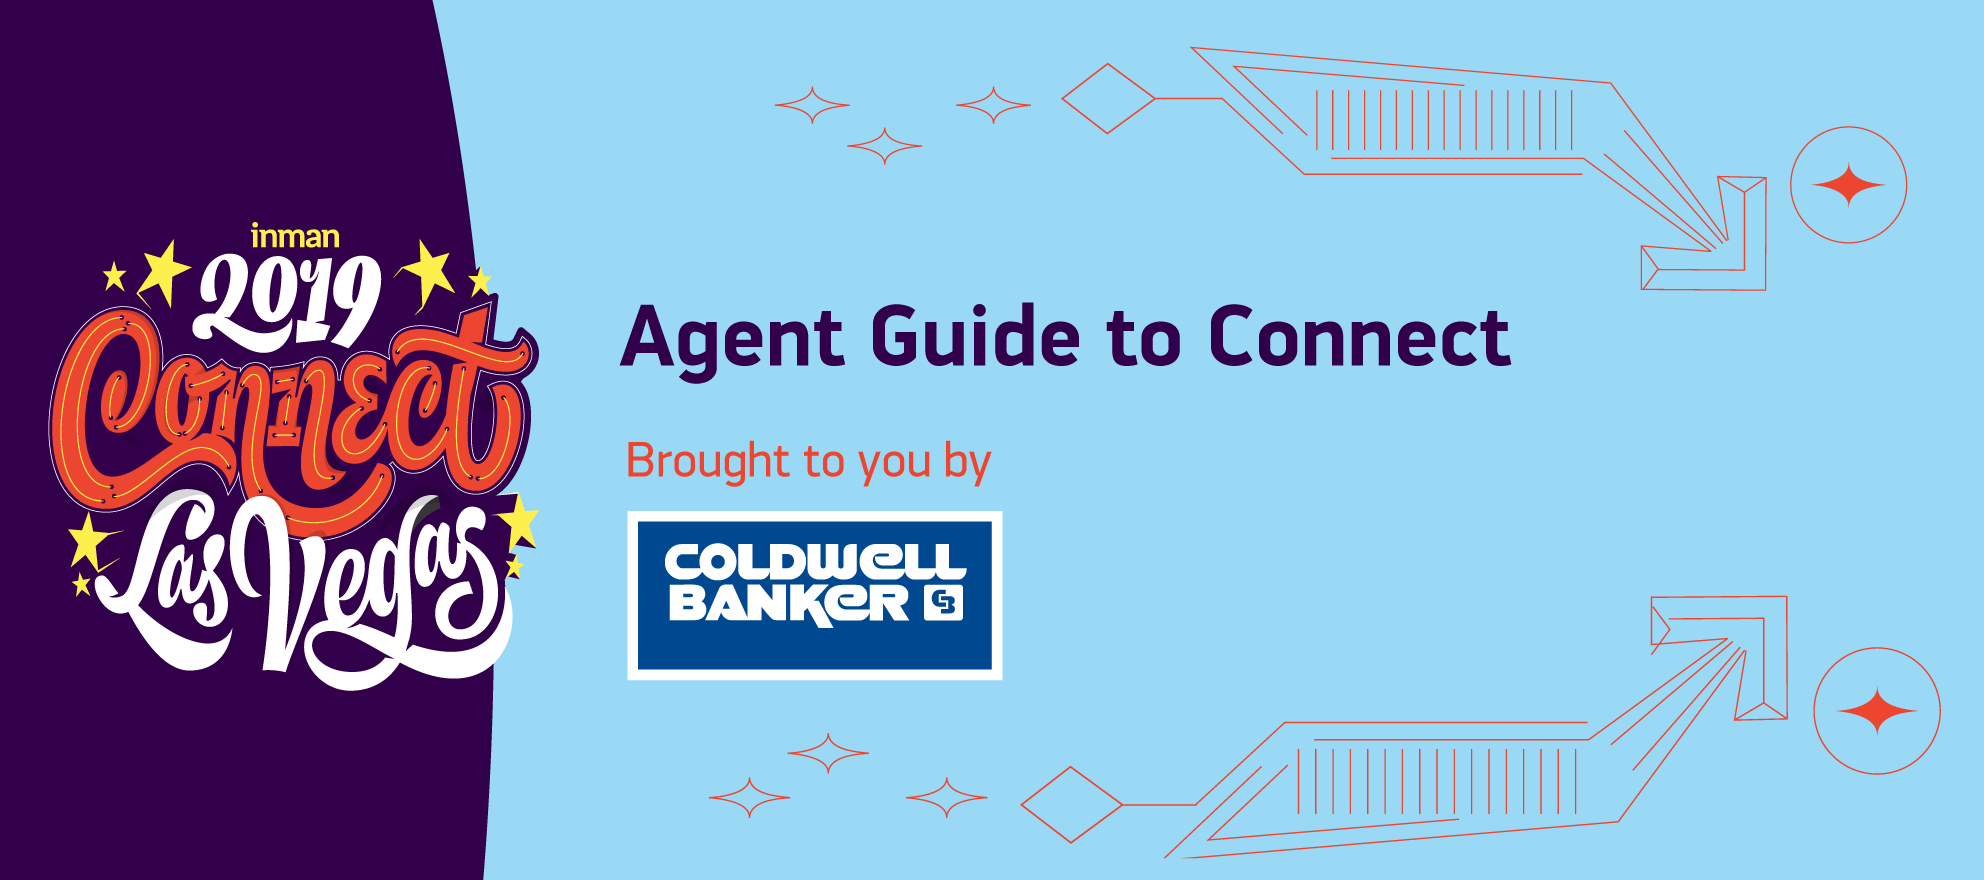 Connect Las Vegas: The agent's guide to Connect